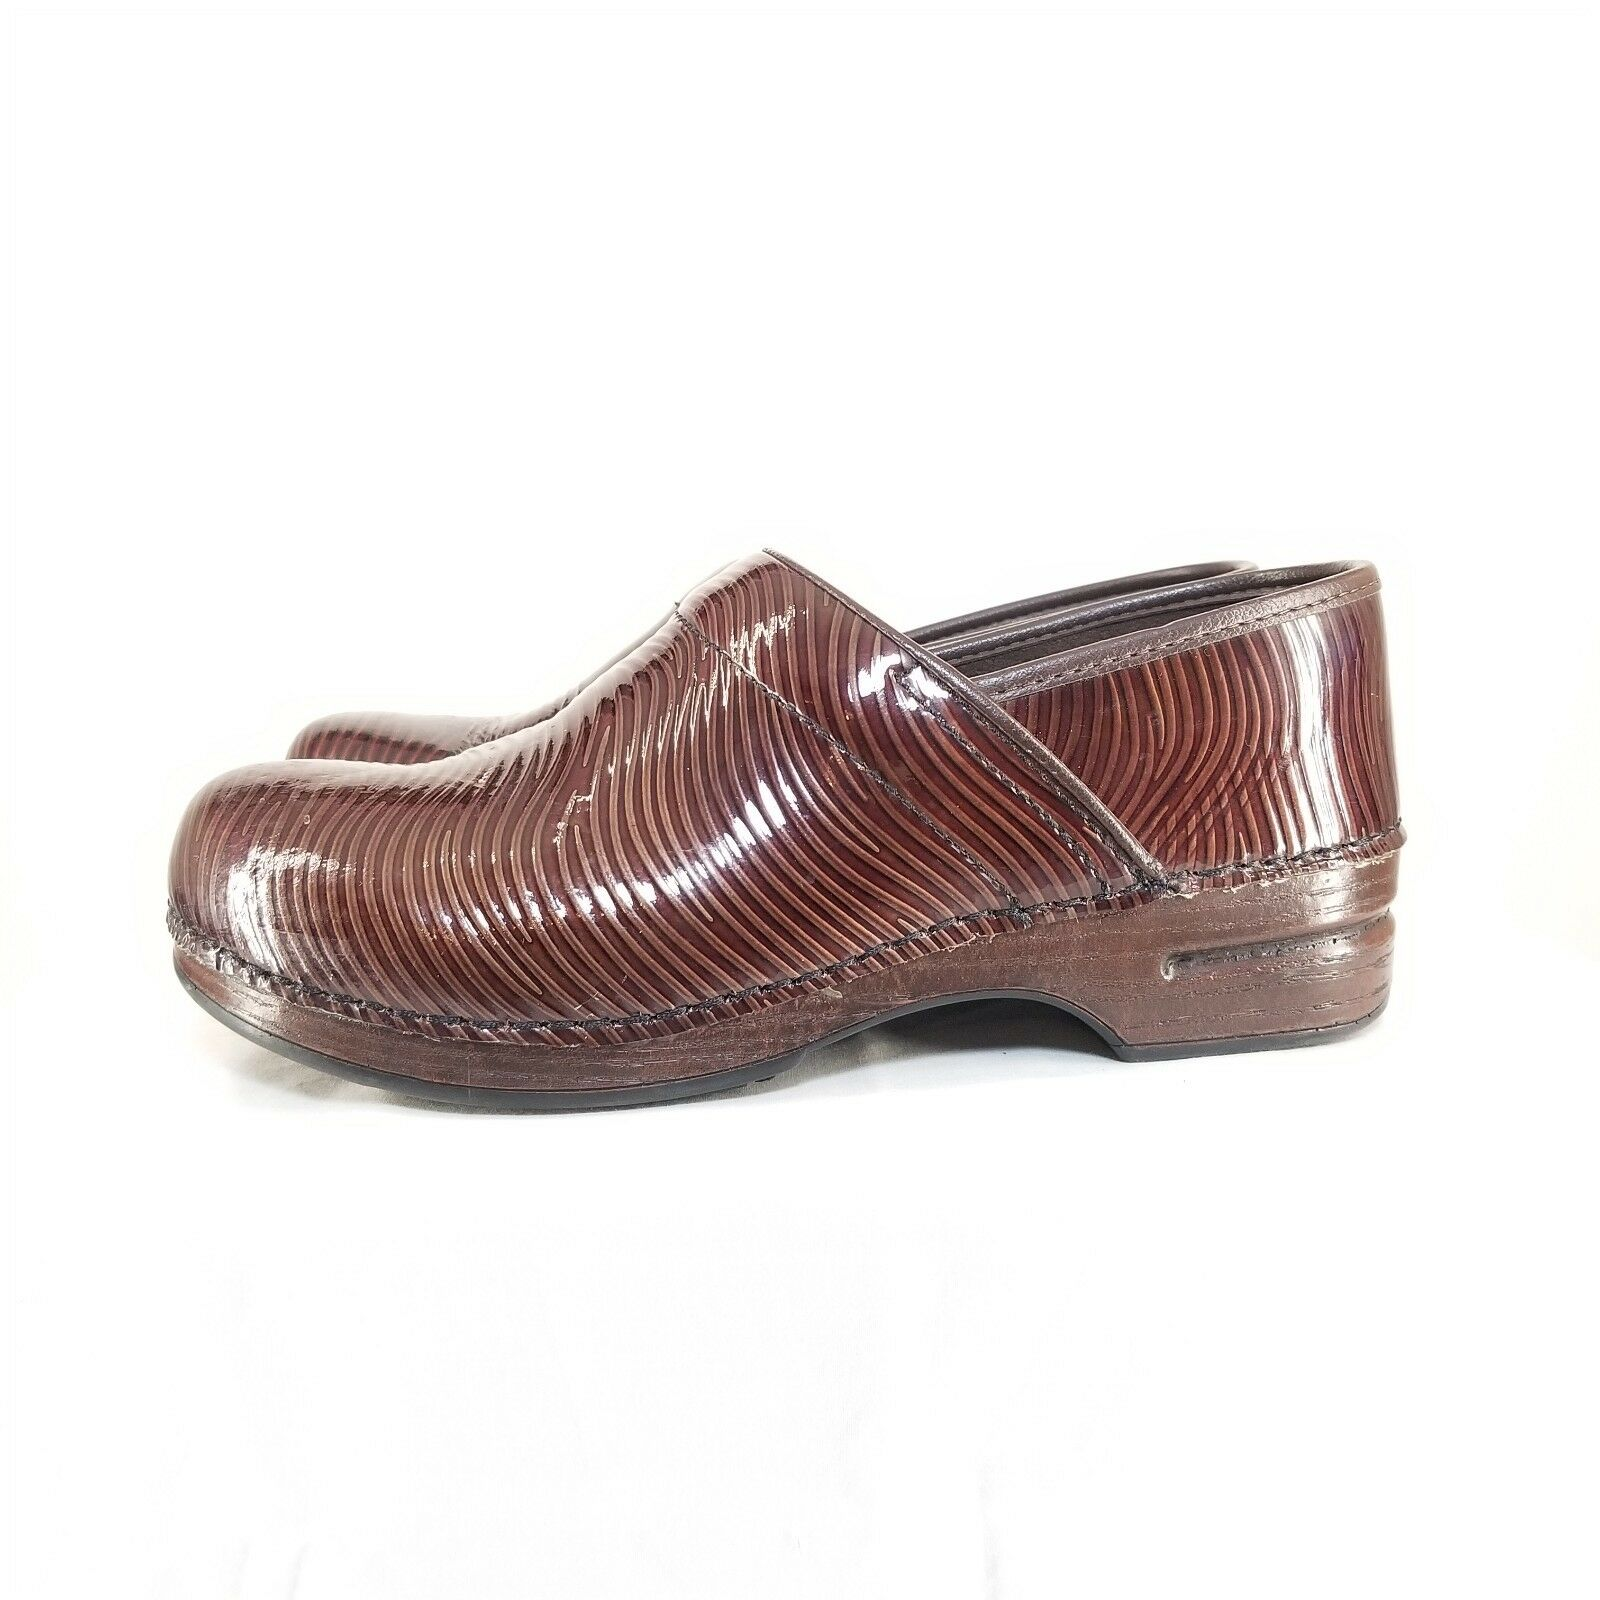 C12 Womens Dansko Pro XP Brown Tooled Leather Clog shoes sz 42 US 11.5-12